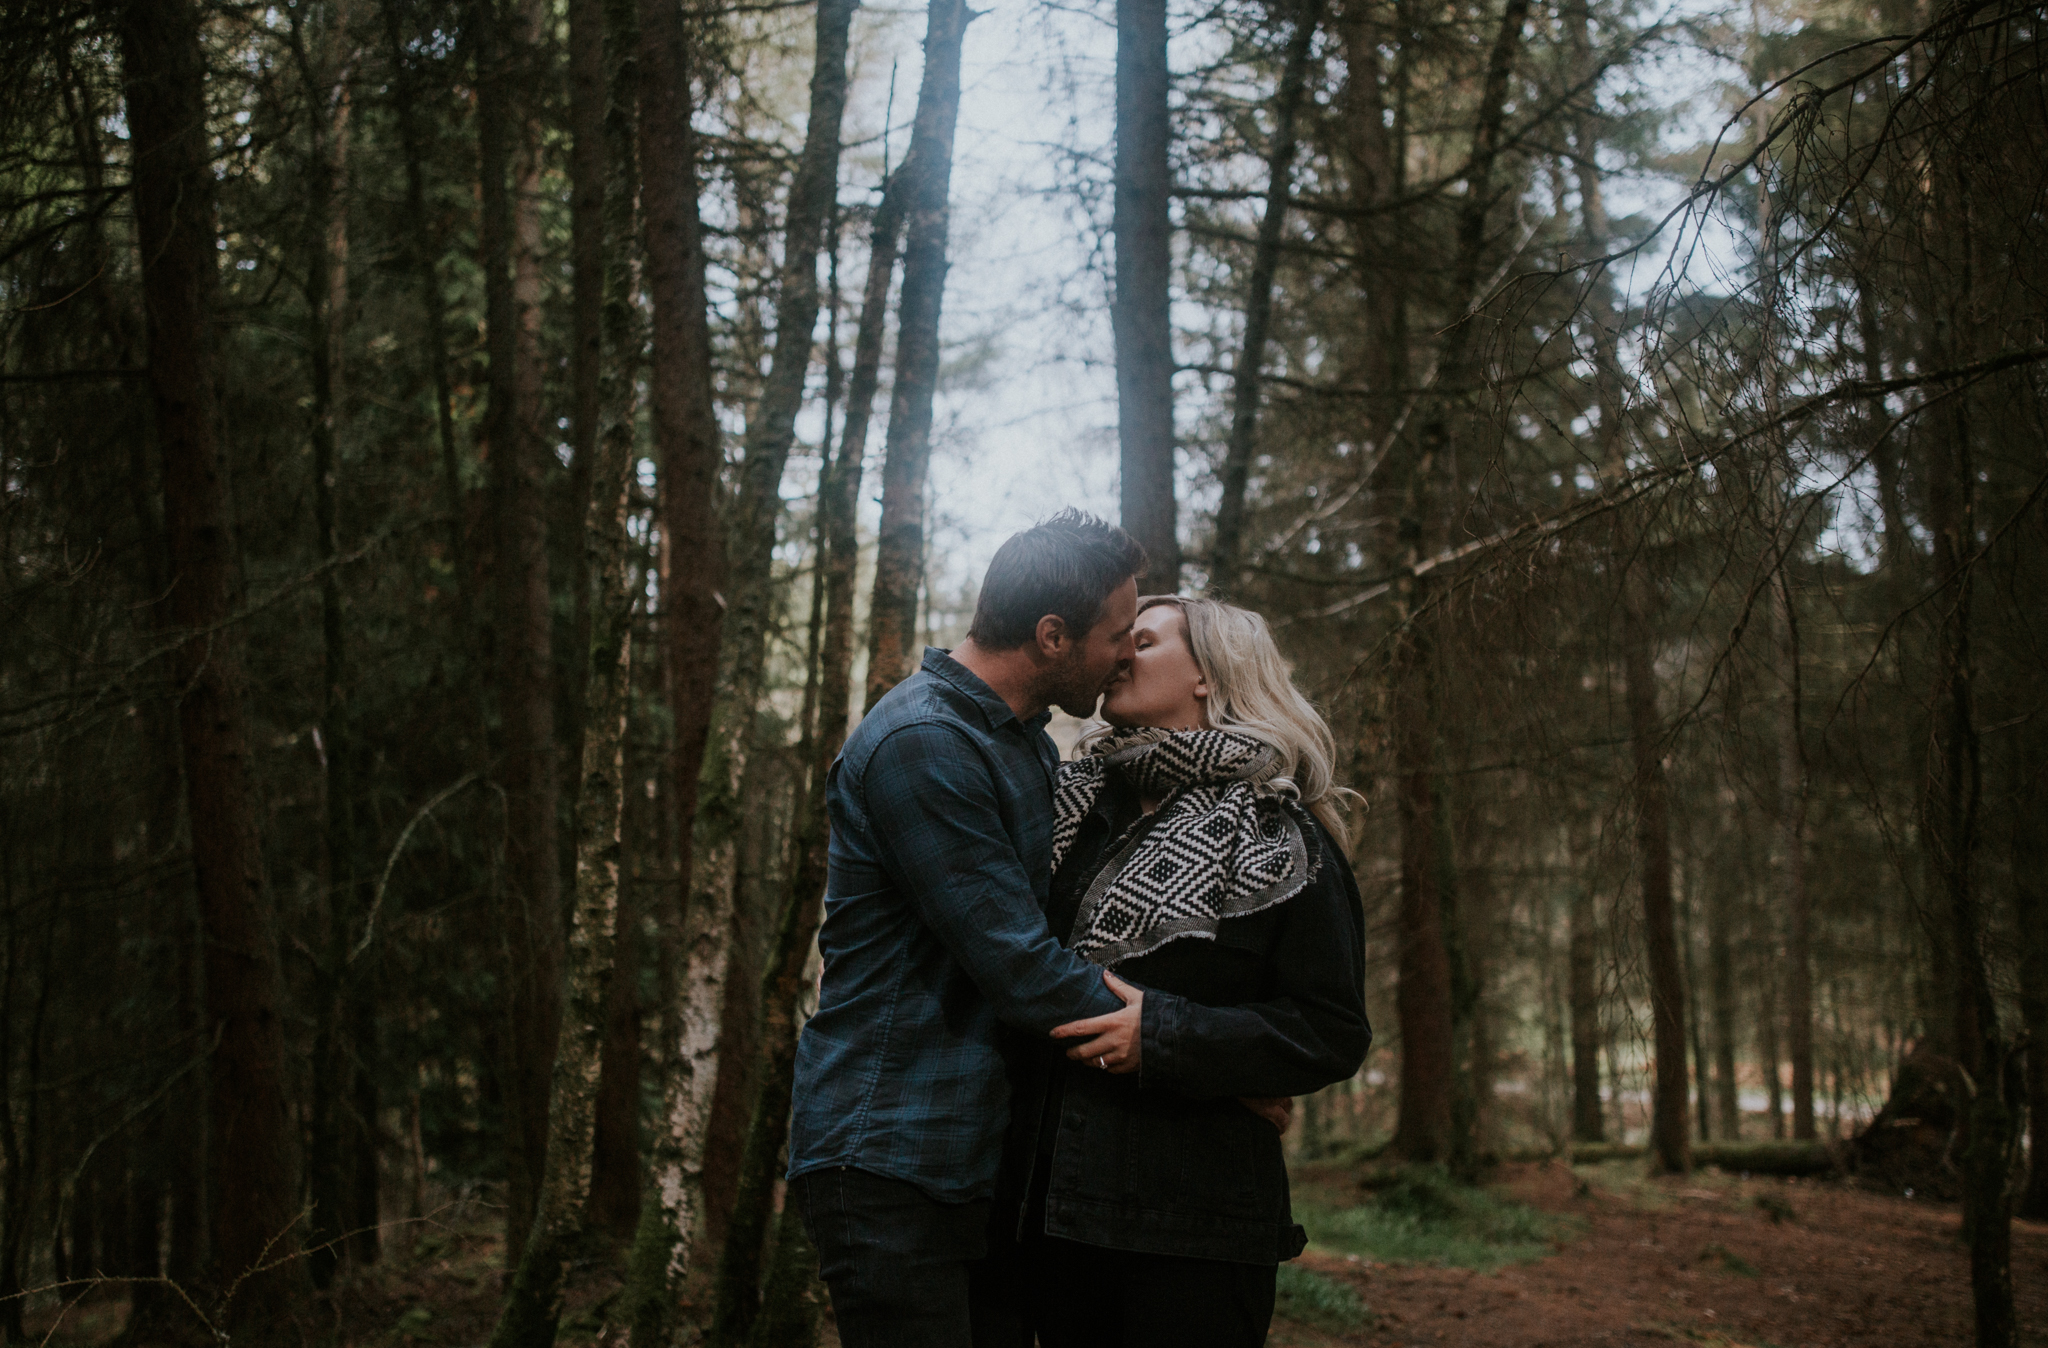 The newly engaged couple is kissing in the Balmaha forest, Loch Lomond wedding and engagement photographer